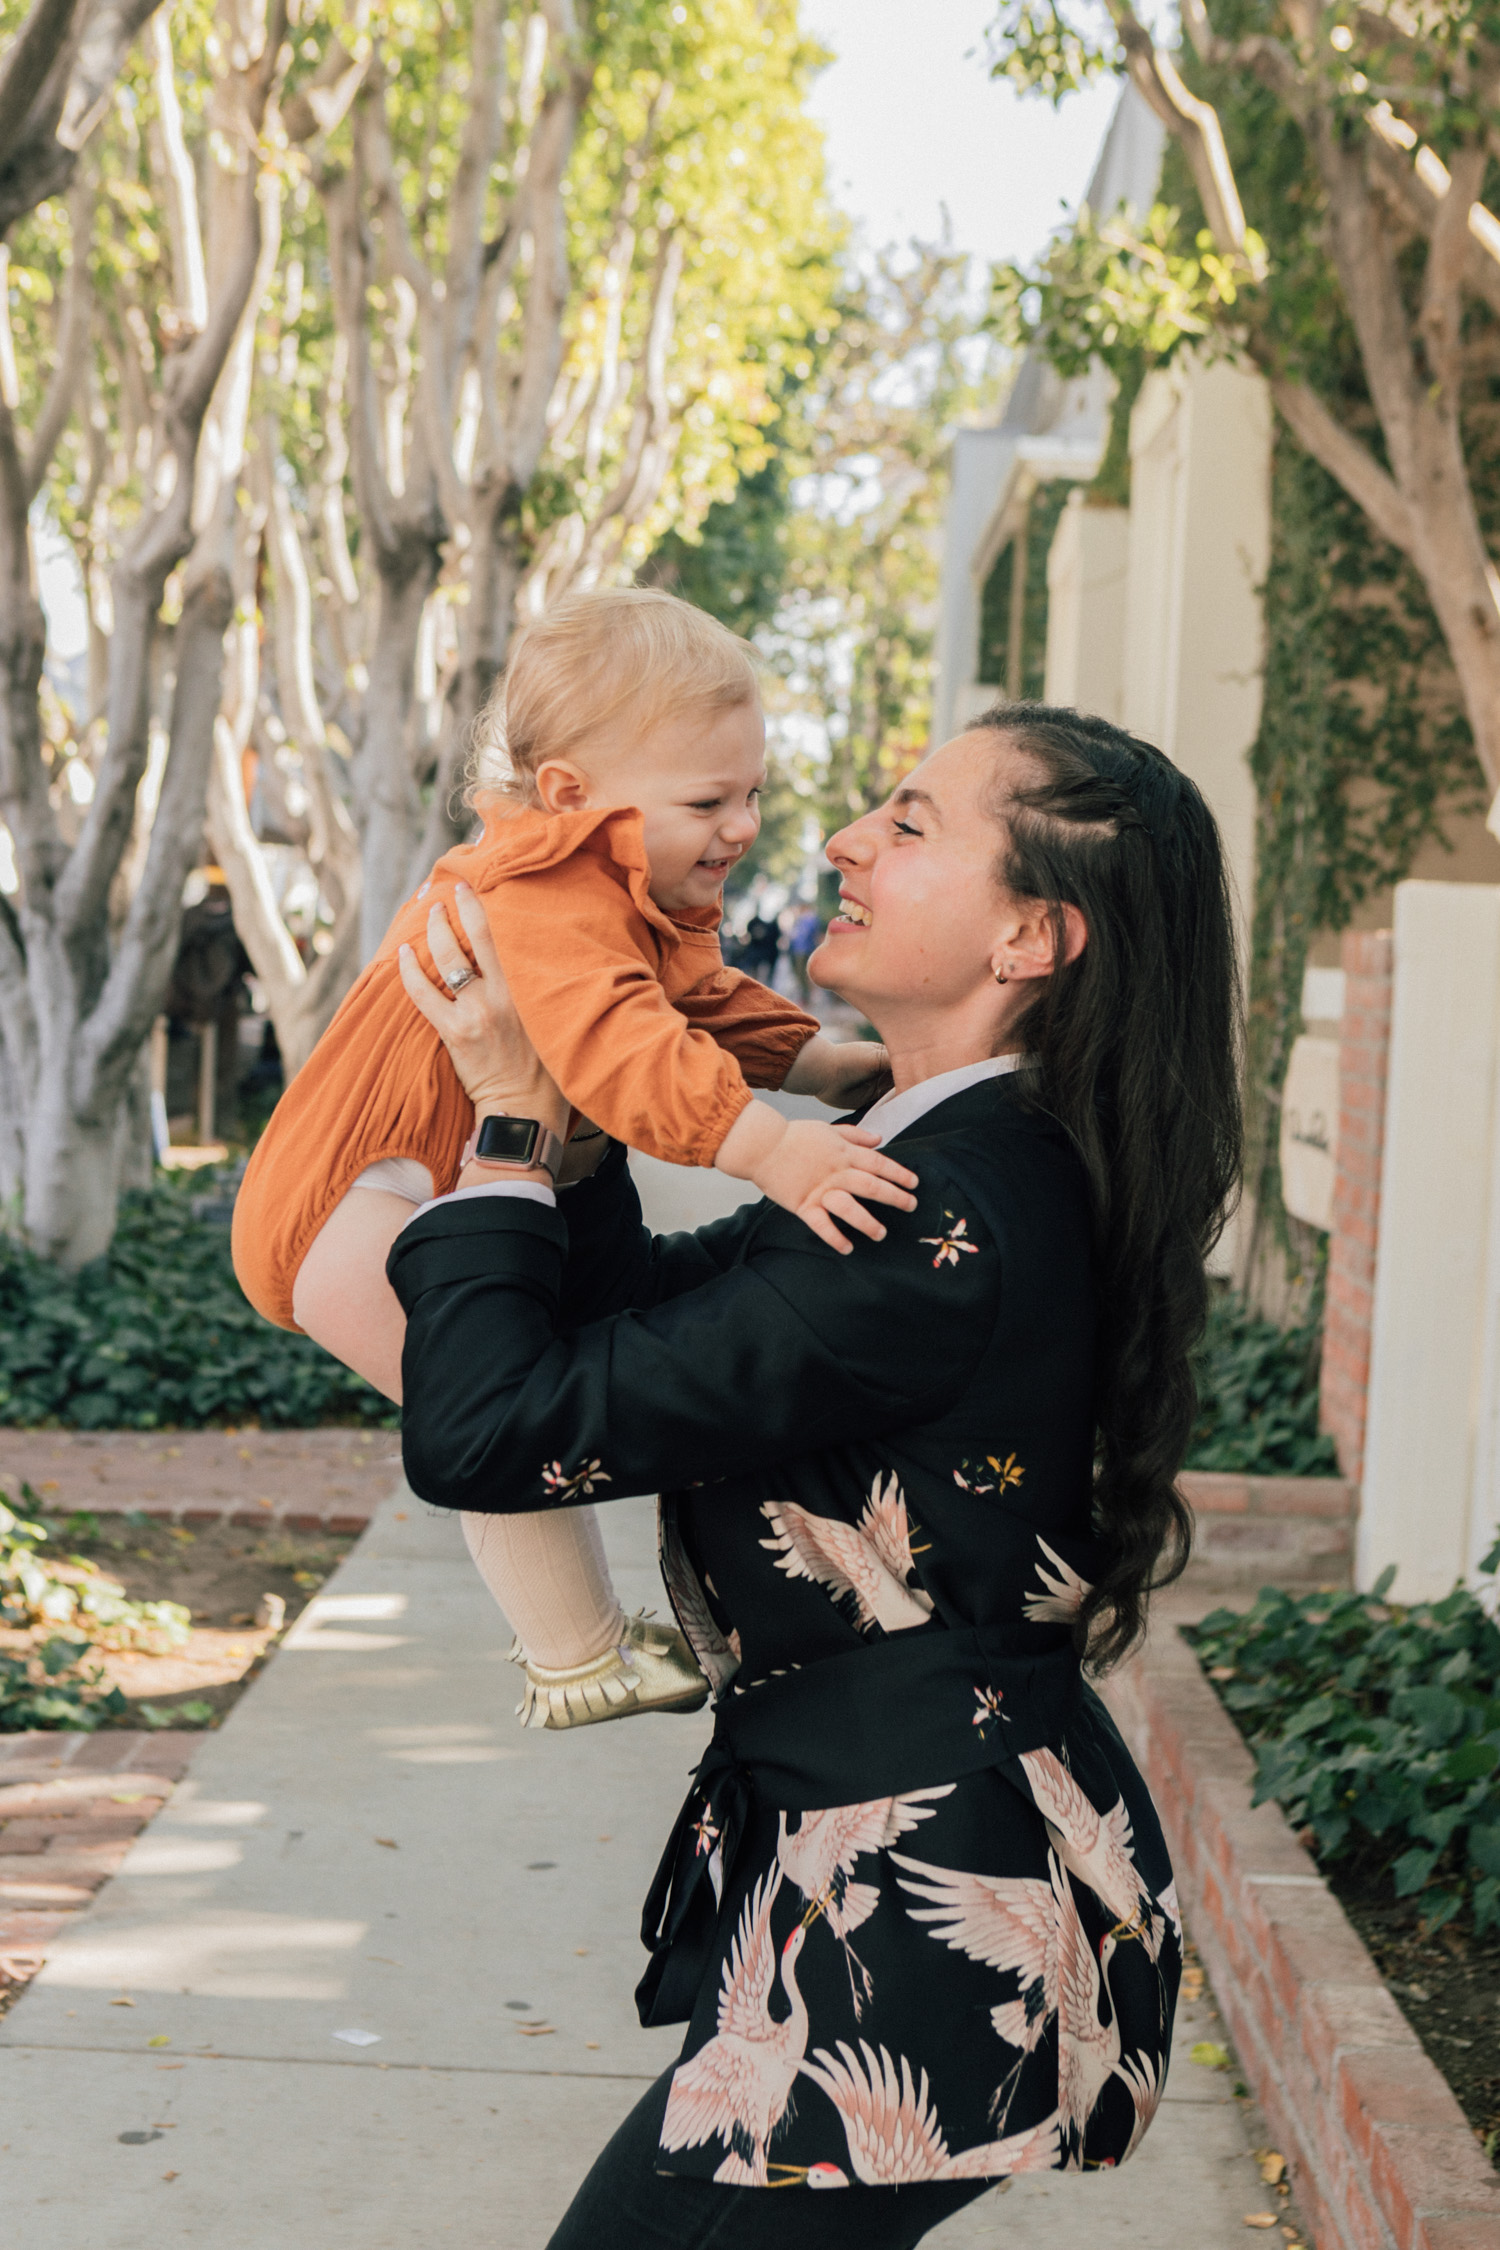 Los Angeles mom and baby street style